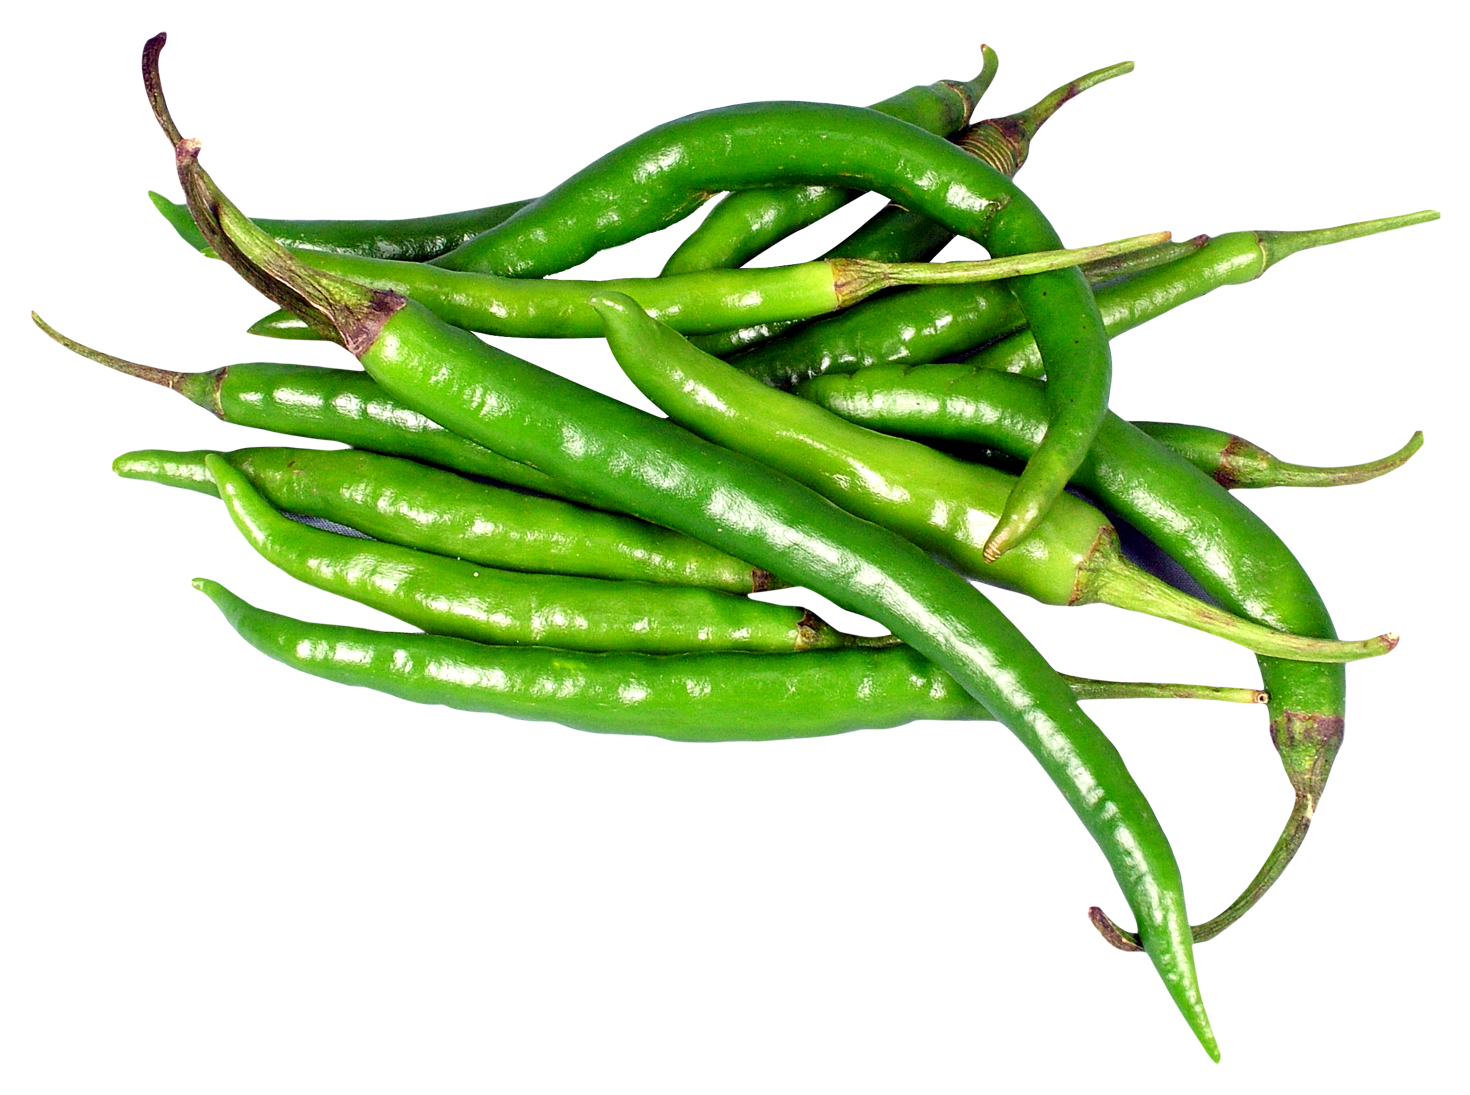 Green chili png image. Peppers clipart serrano pepper